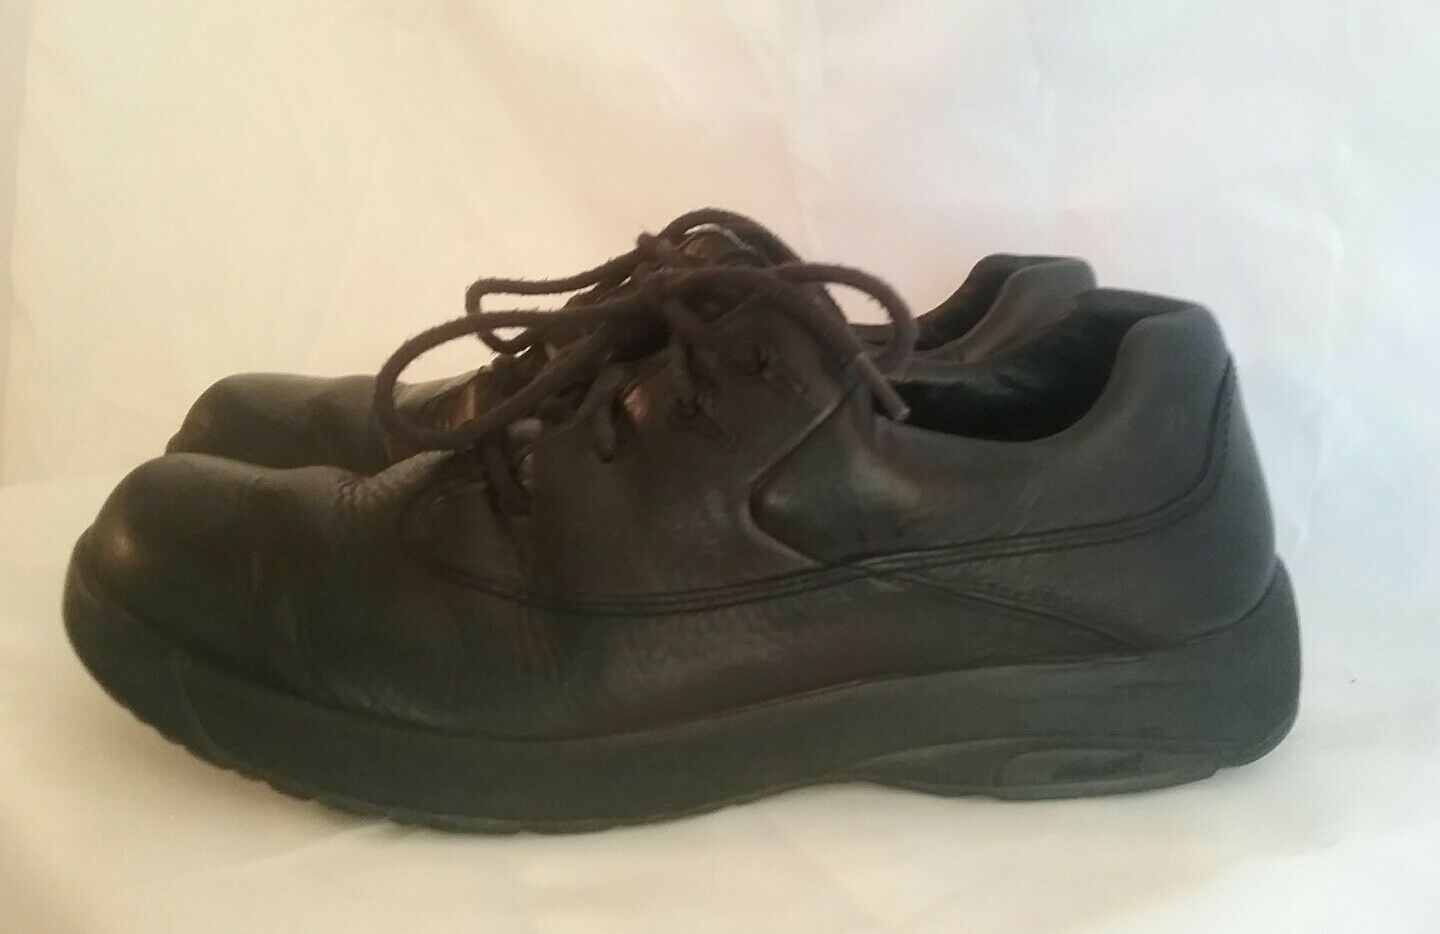 Dunham New Balance Oxford Mens Black Leather Walking Oxford Balance Shoe 10AA f27d82